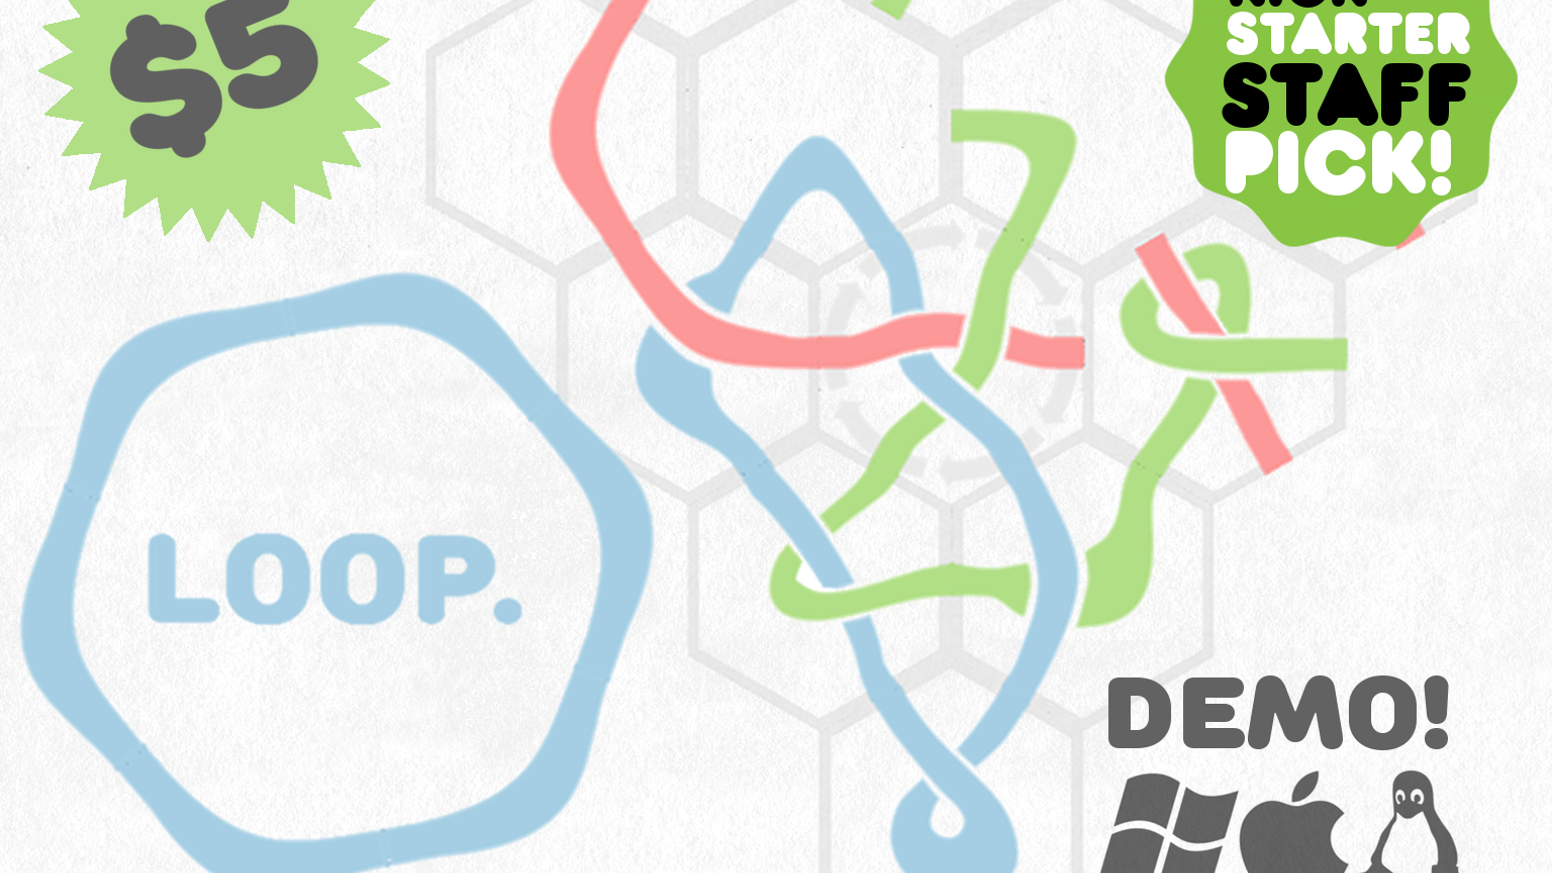 LOOP is a tranquil puzzle game for PC, Mac & Linux. DEMO AVAILABLE!